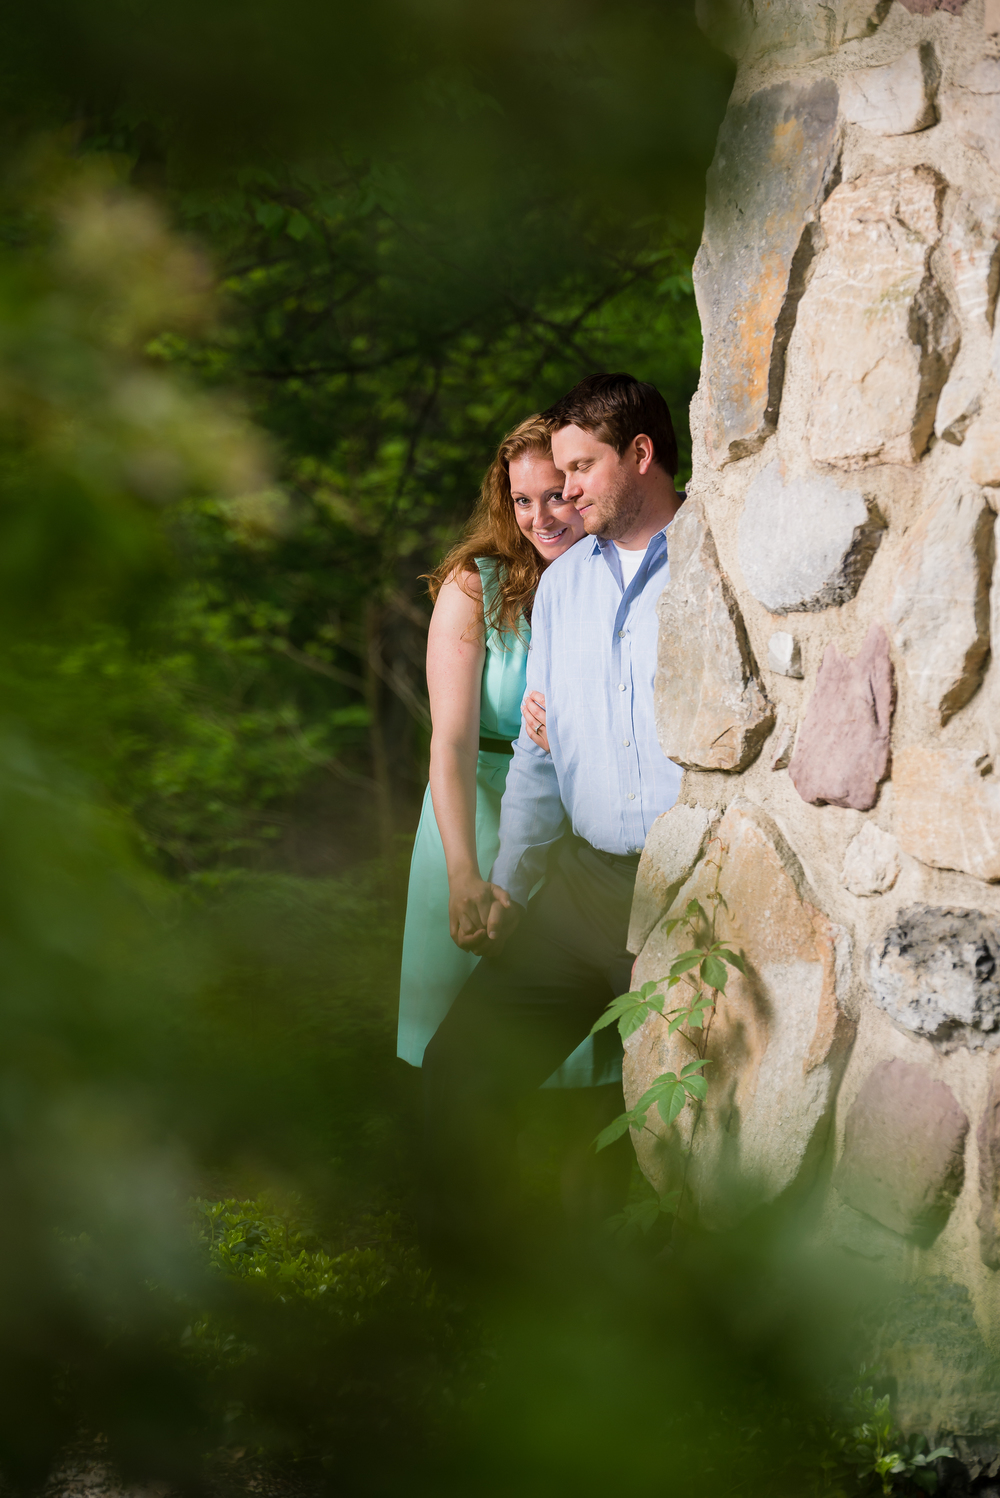 Angela-Jerry-Engagement-Garcia-Photography-8614.jpg